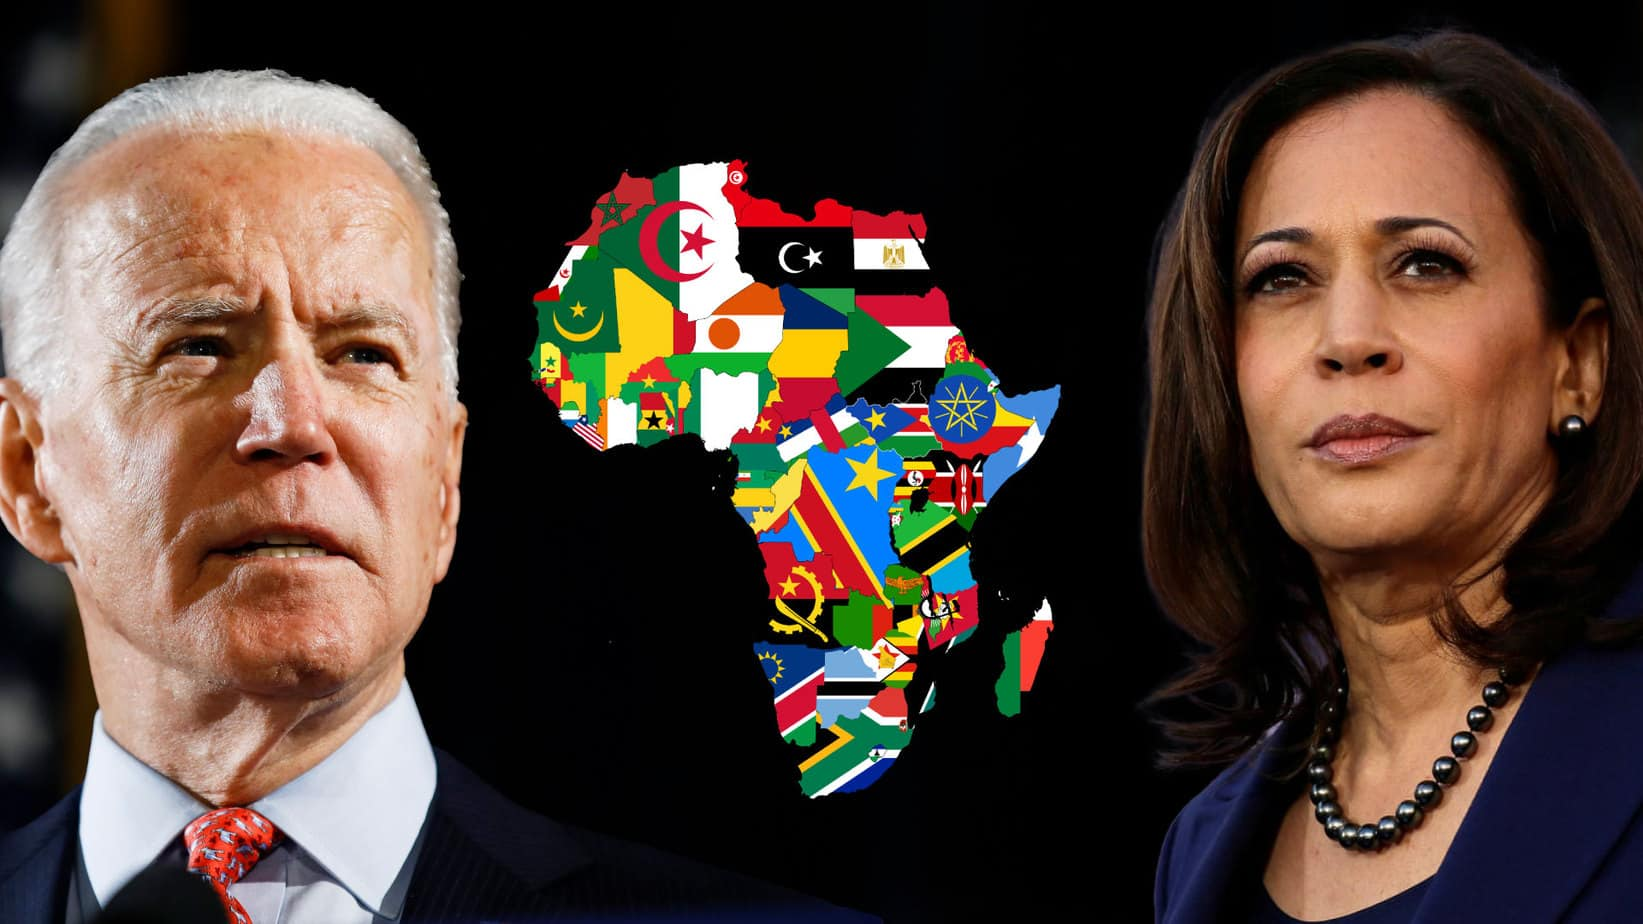 The inauguration of Joe Biden as the 46th president of the United States and Kamala Harris as his sidekick heralds a new dawn for foreign policy. Image: Food For Mzansi